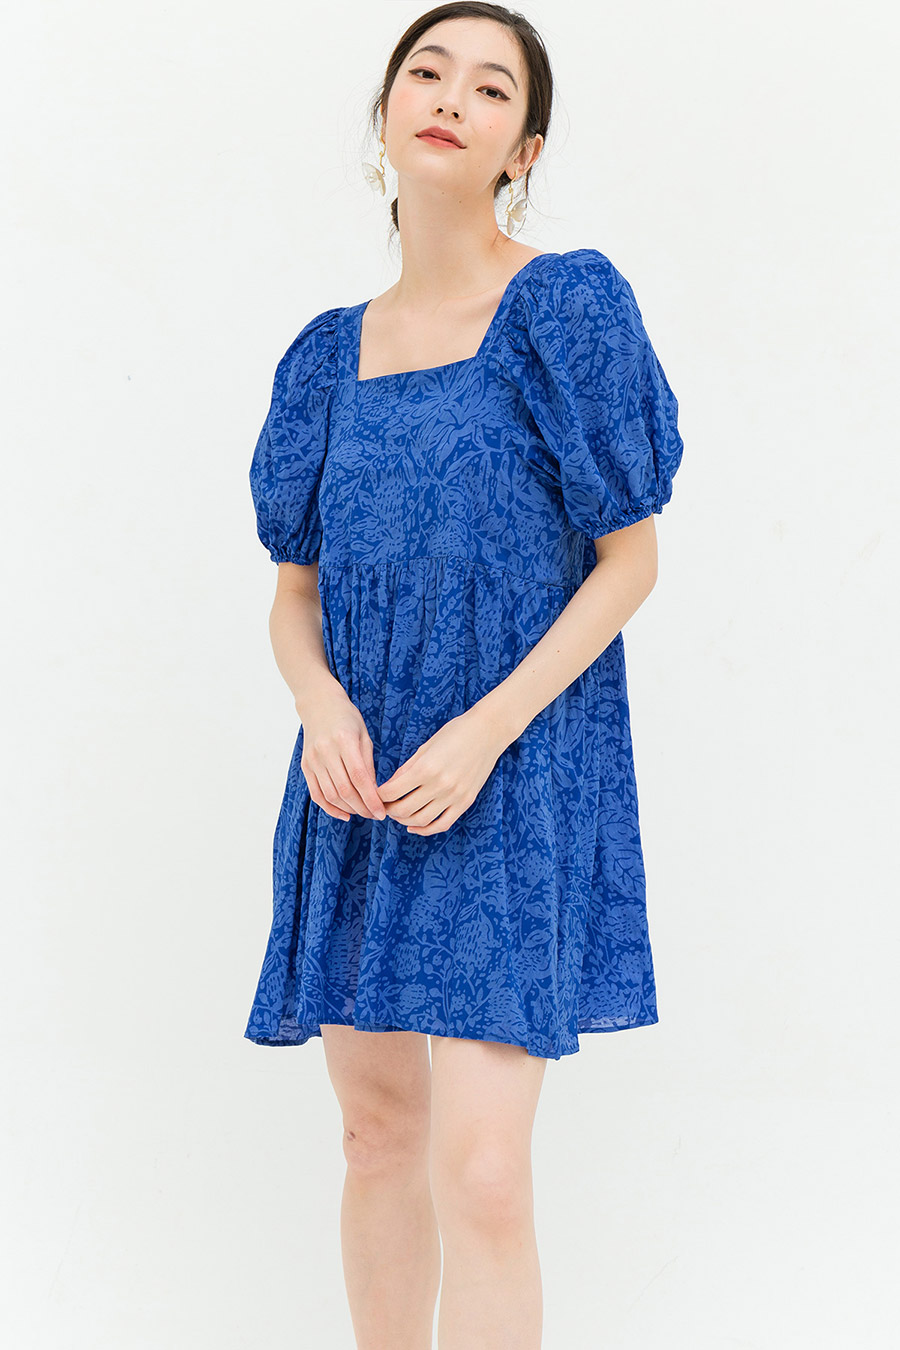 PHYLLIS DRESS - BLUEBERRY